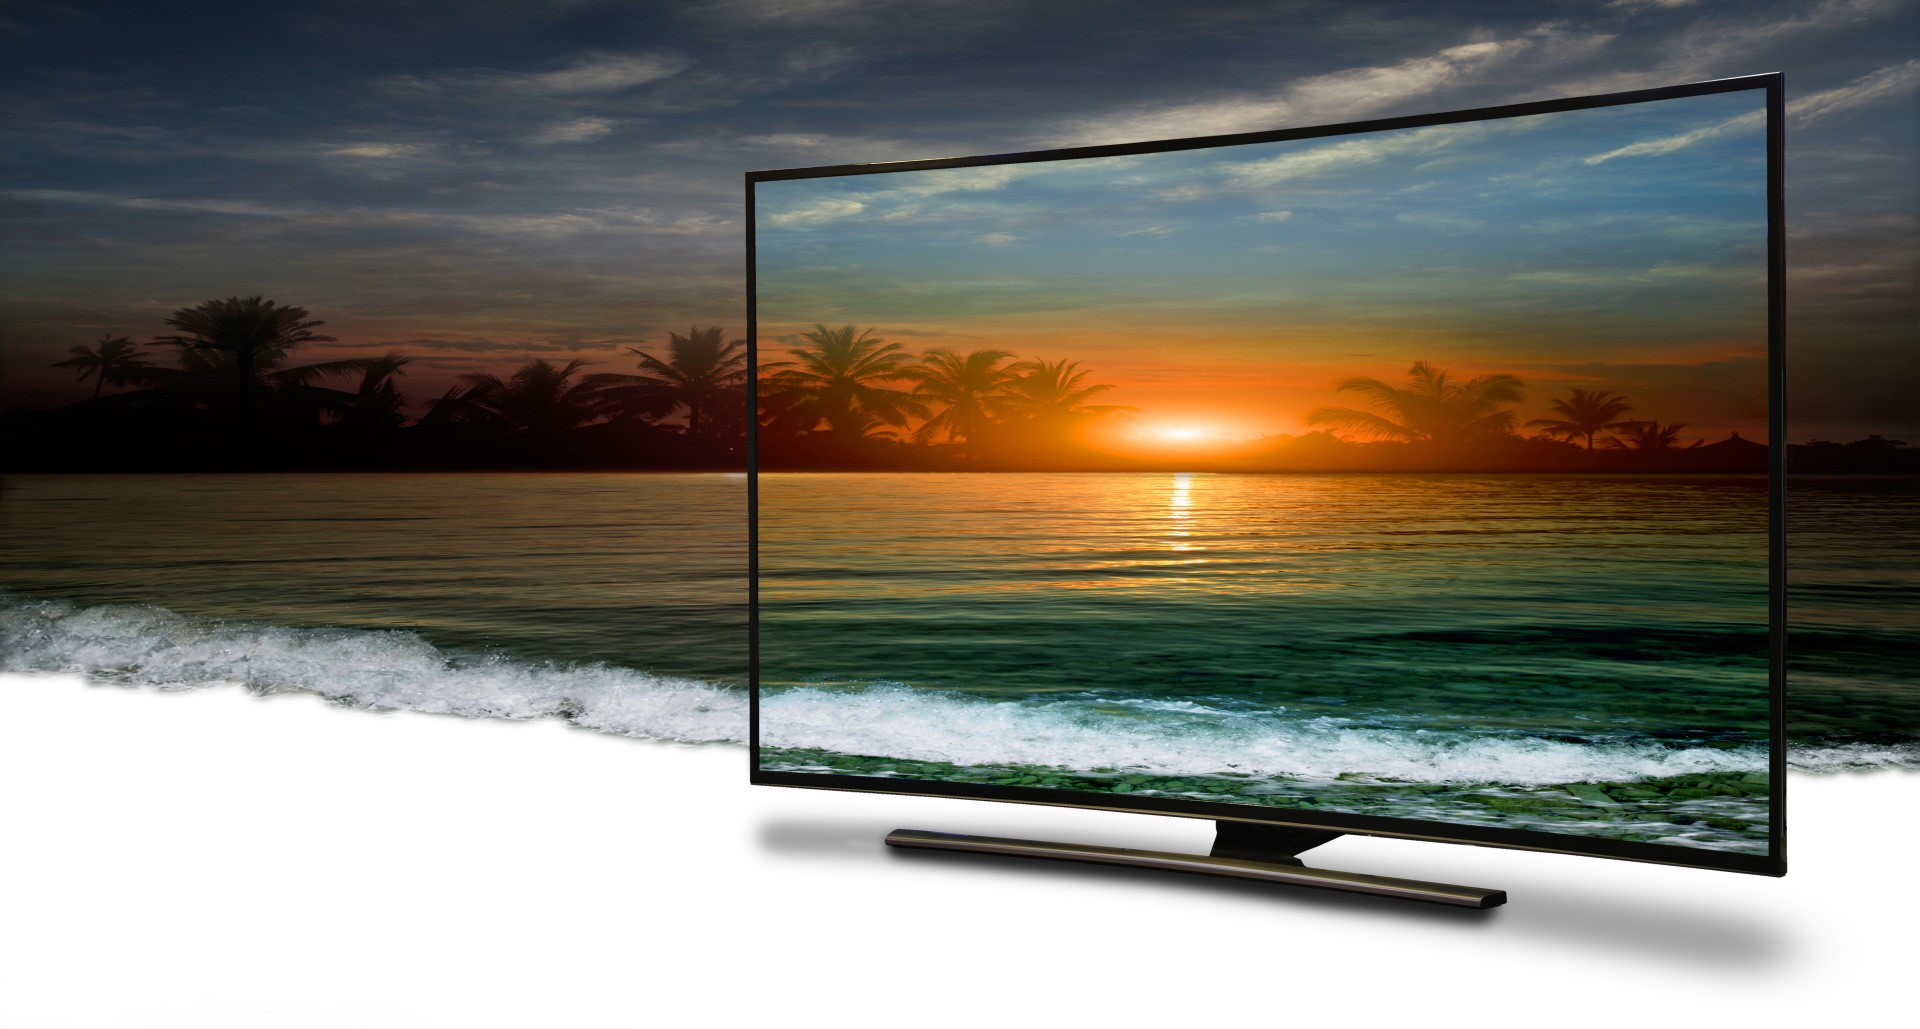 An image related to Top Samsung 49-Inch TVs